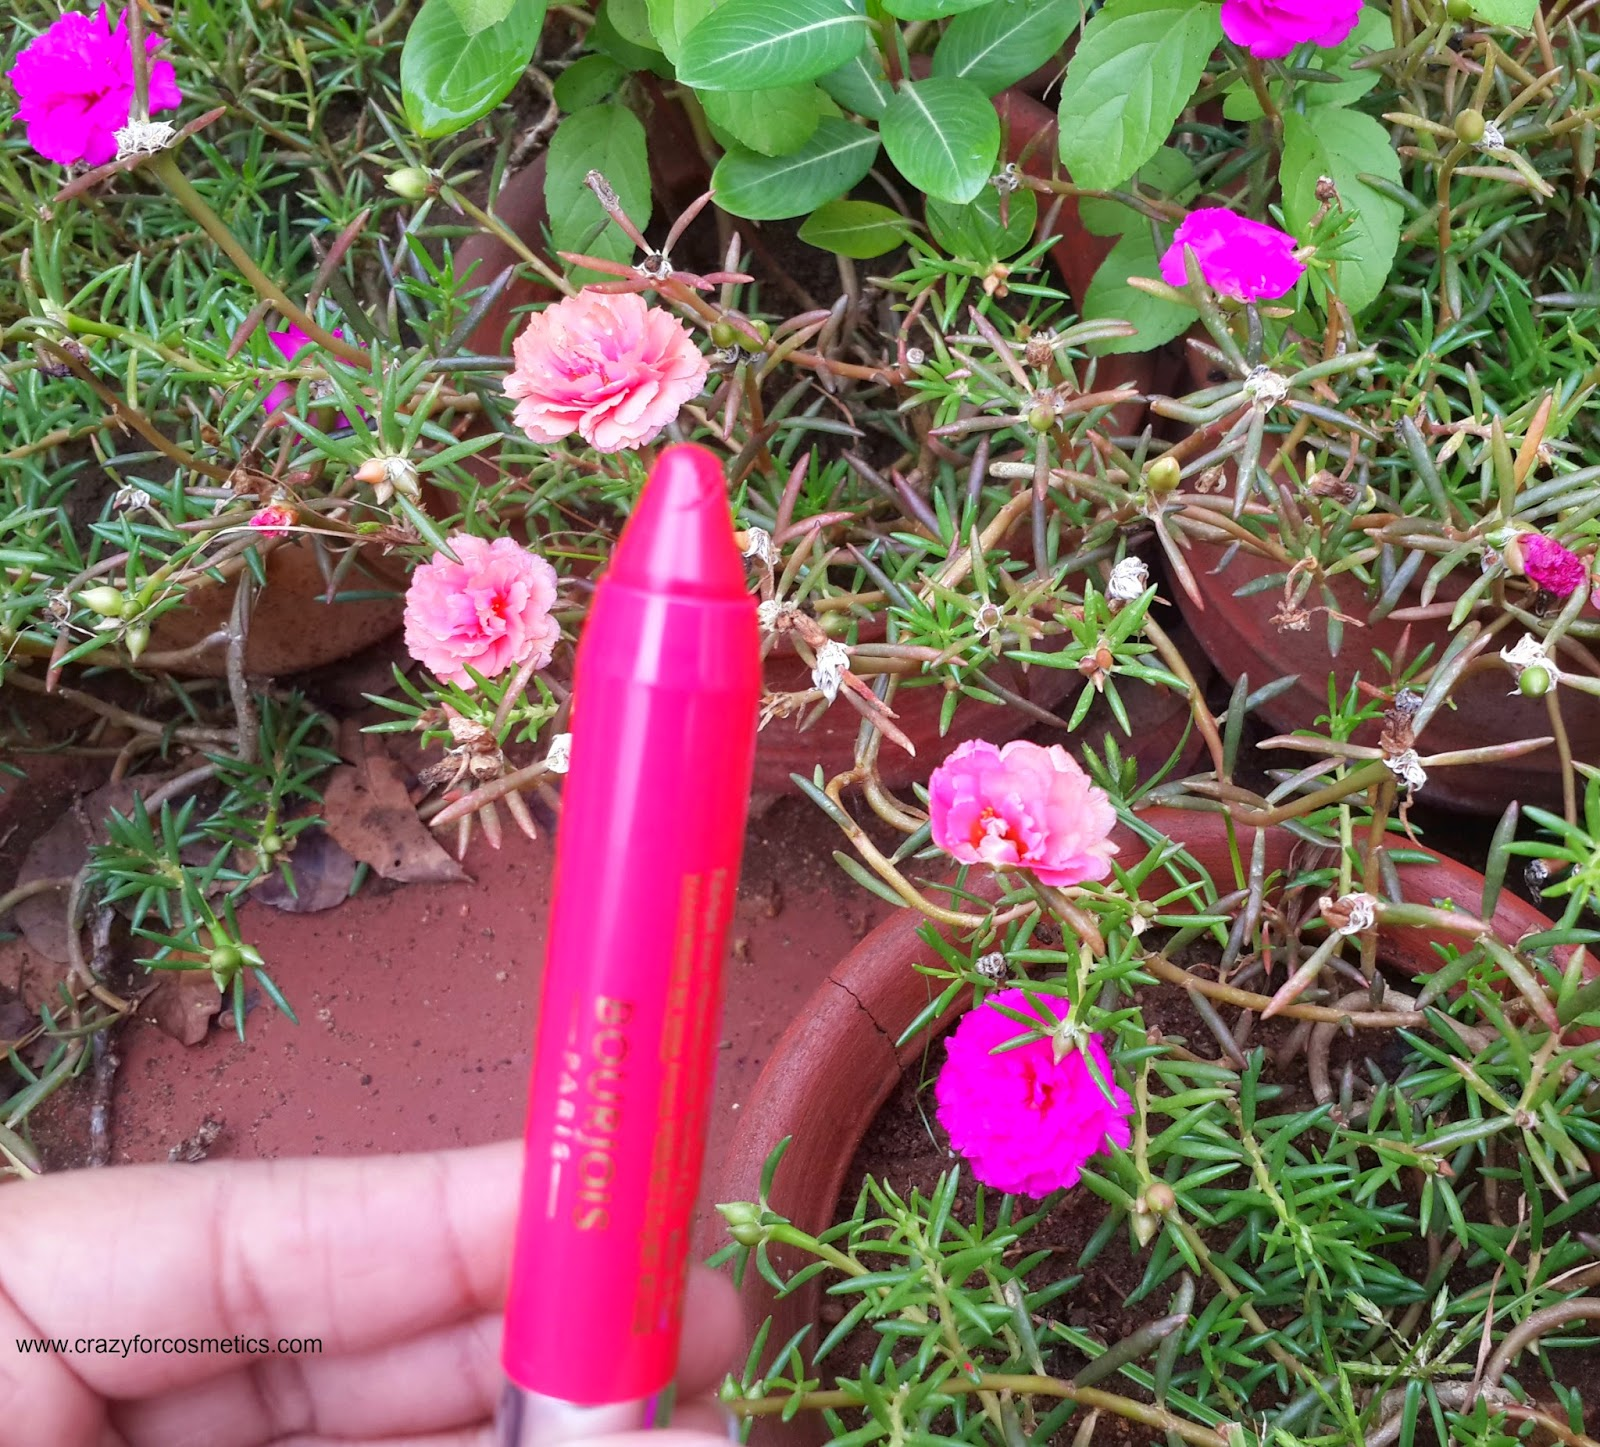 Bourjois Paris Color Boost Lip Crayon in Red Sunrise in India